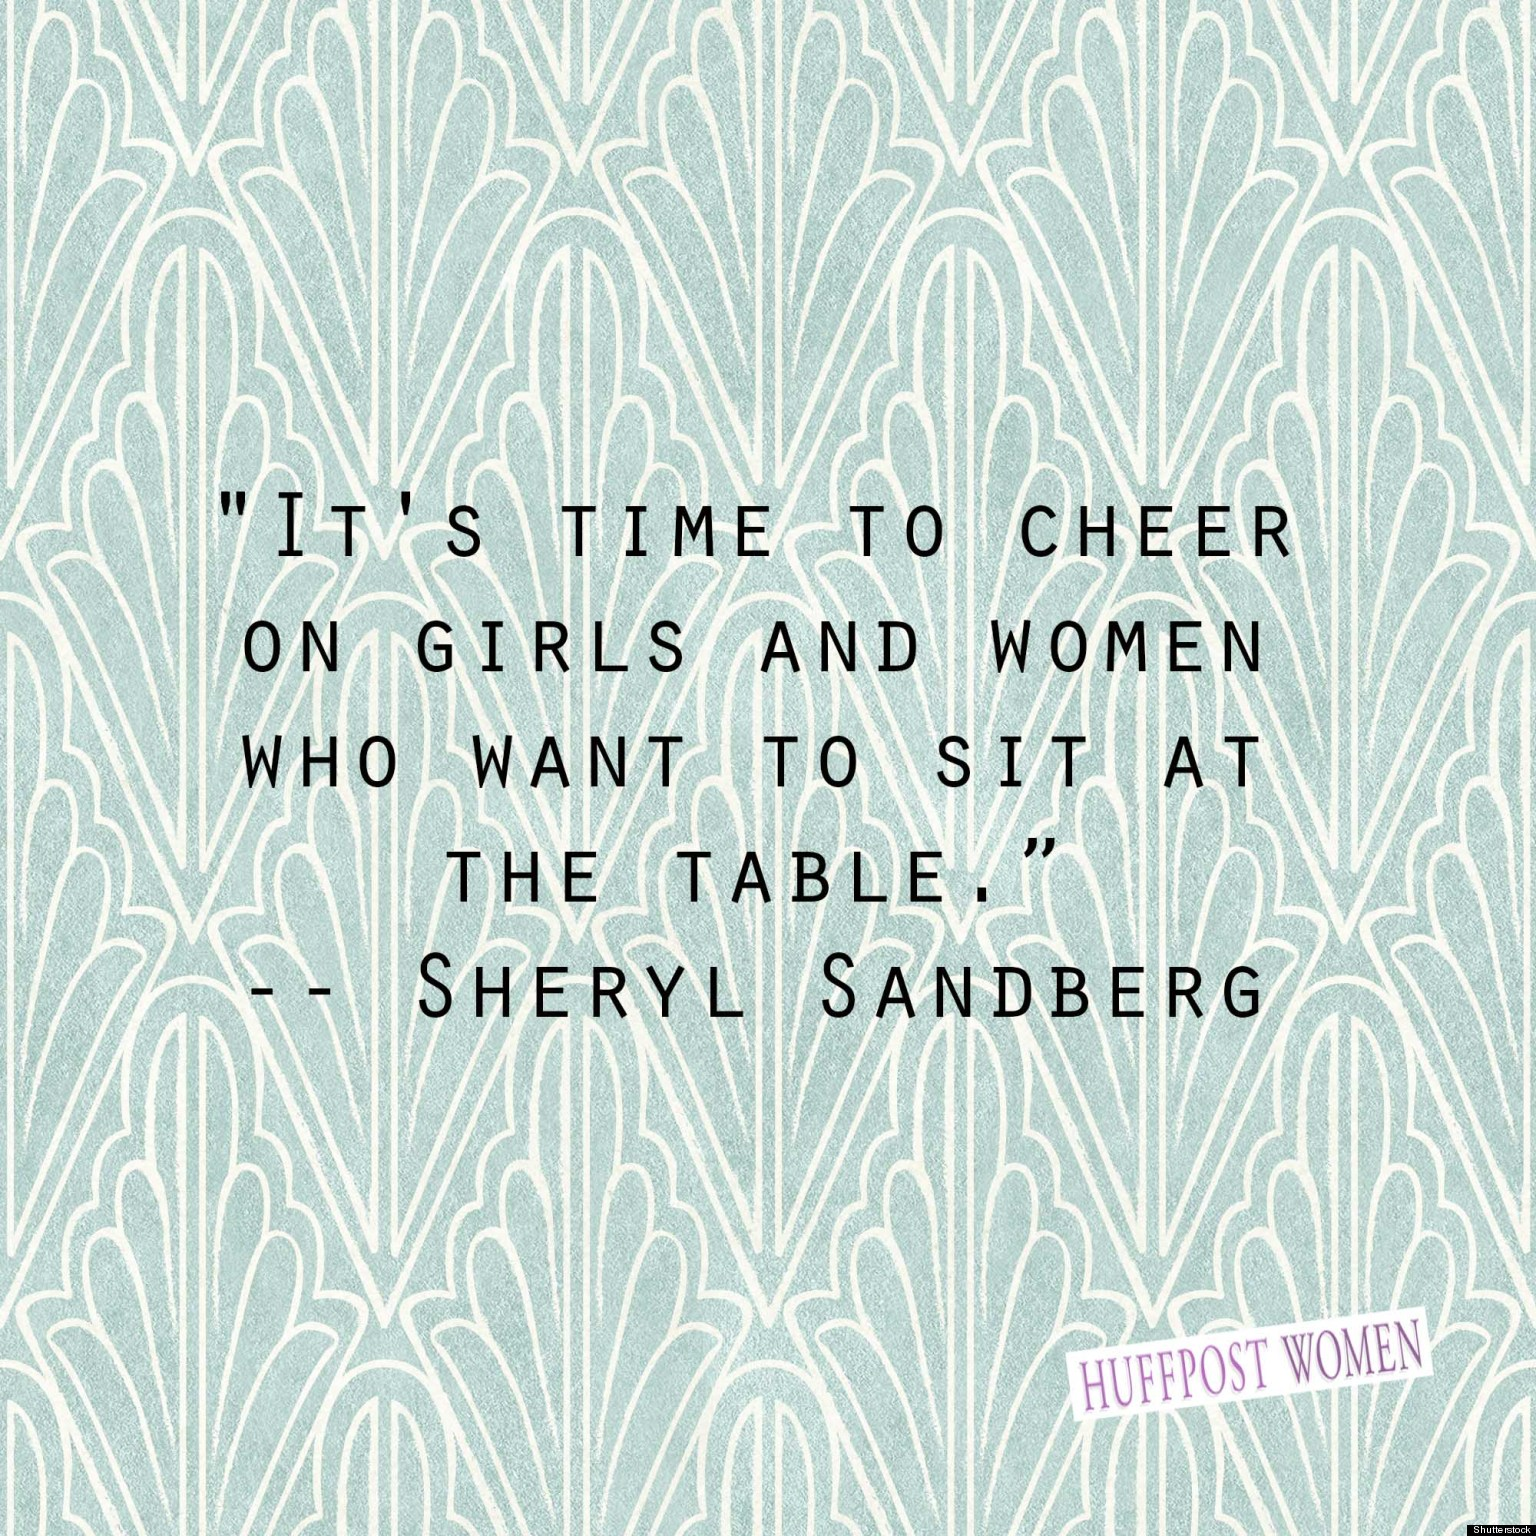 Quotes About Bad Friendships Lean In' Quotes 11 Of The Best Quotations From Sheryl Sandberg's